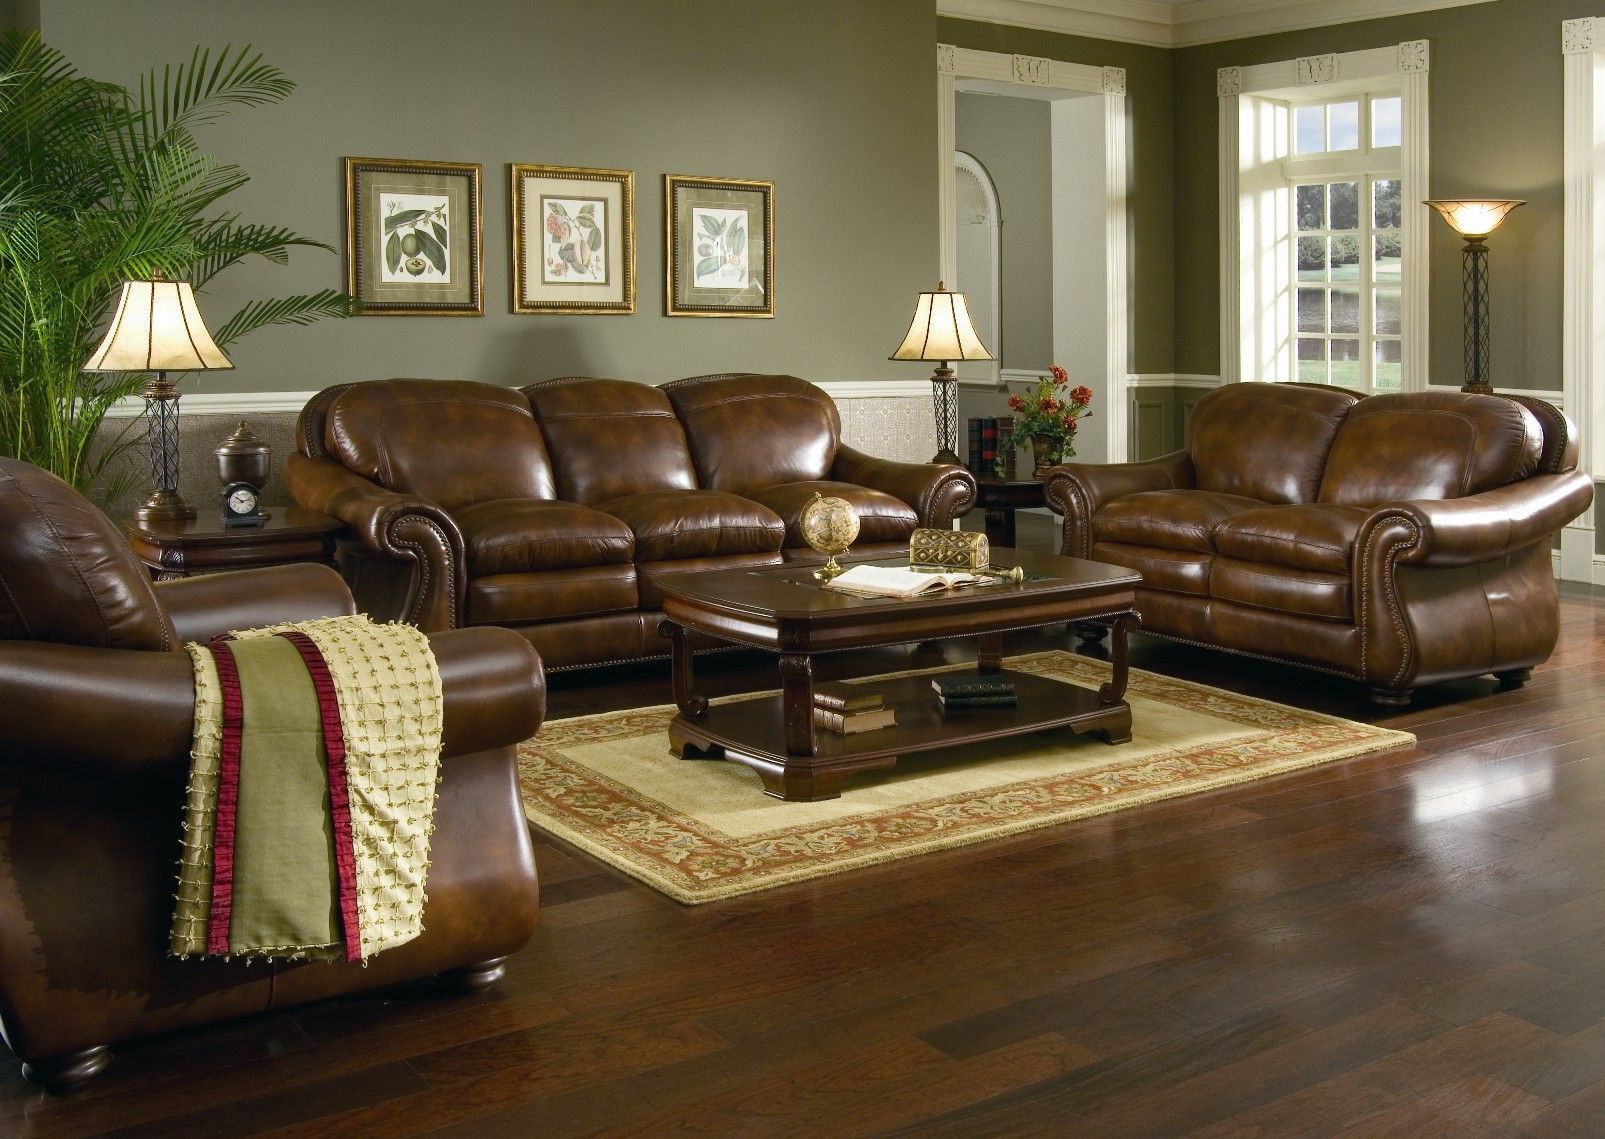 Paint Ideas Living Room Brown Furniture   Colors Of Living Room Leather  Sofa U2013 Minimalist Home Decor Design Ideas